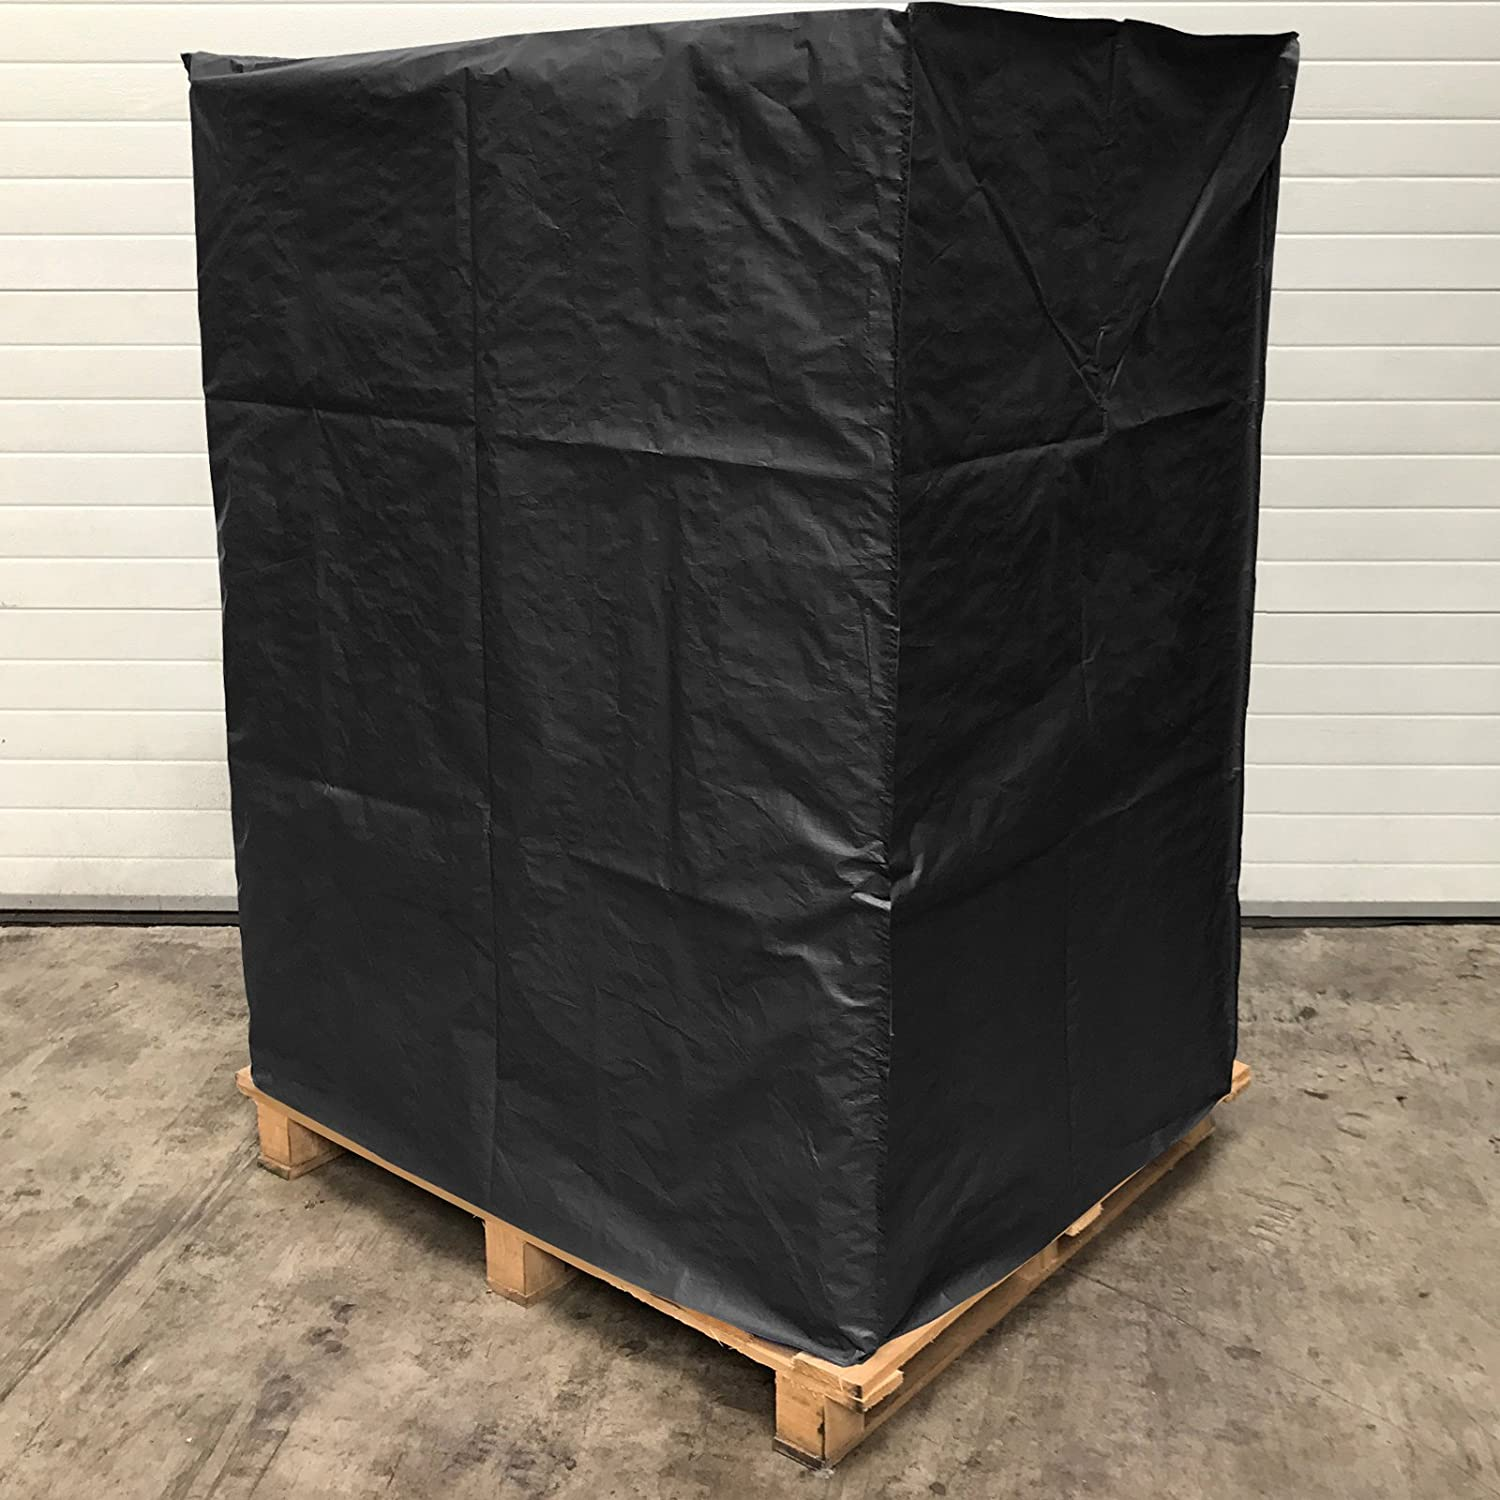 Black//Silver, EU Pallet 1m High vtarp /® UK EU Pallet Protective Cover 120 GSM Heavy Duty Weatherproof Fitted Reusable